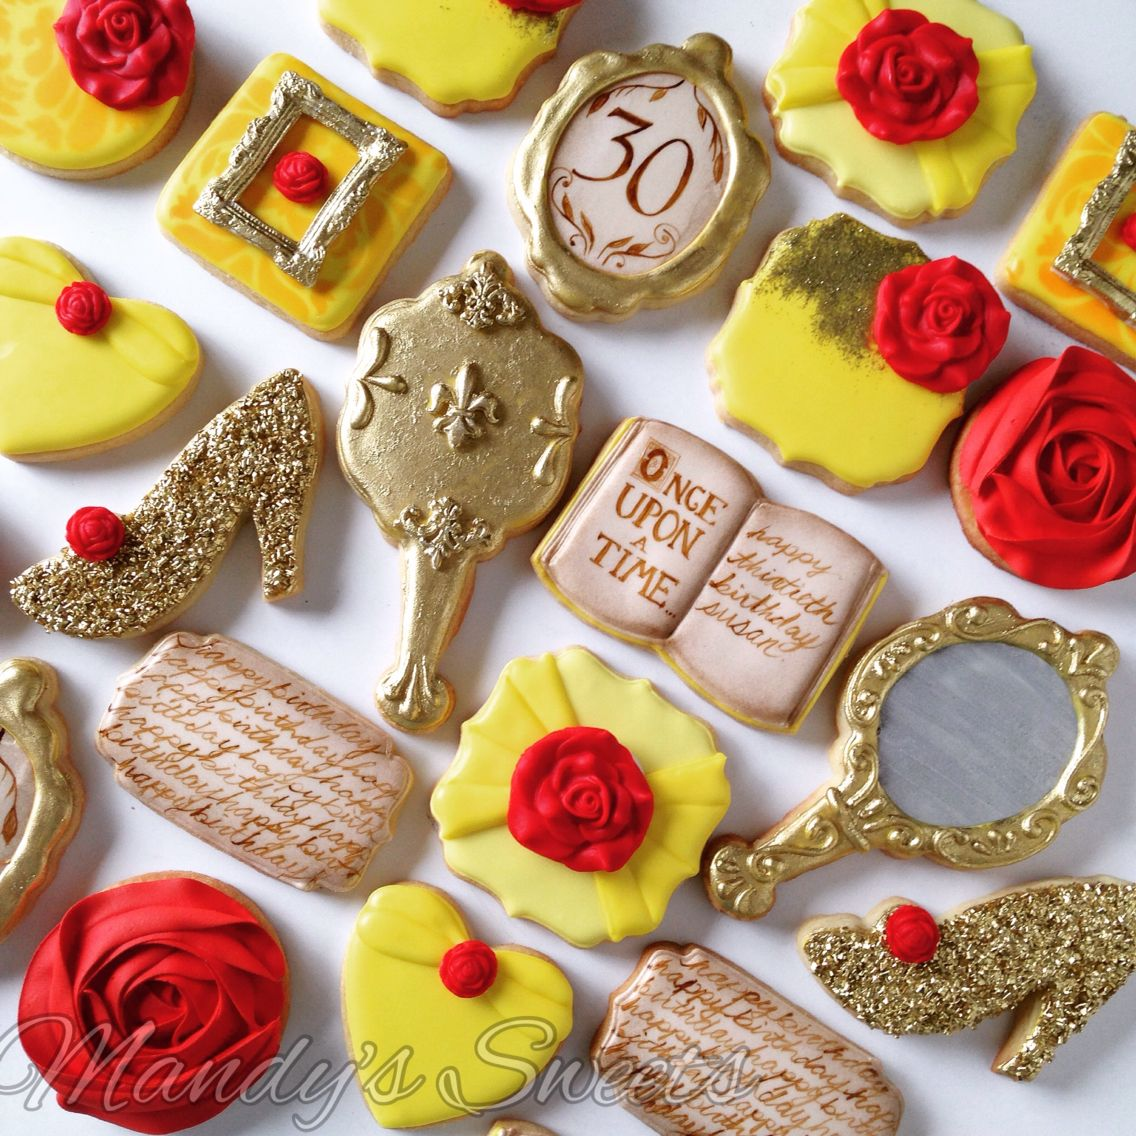 Belle beauty and the beast cookies